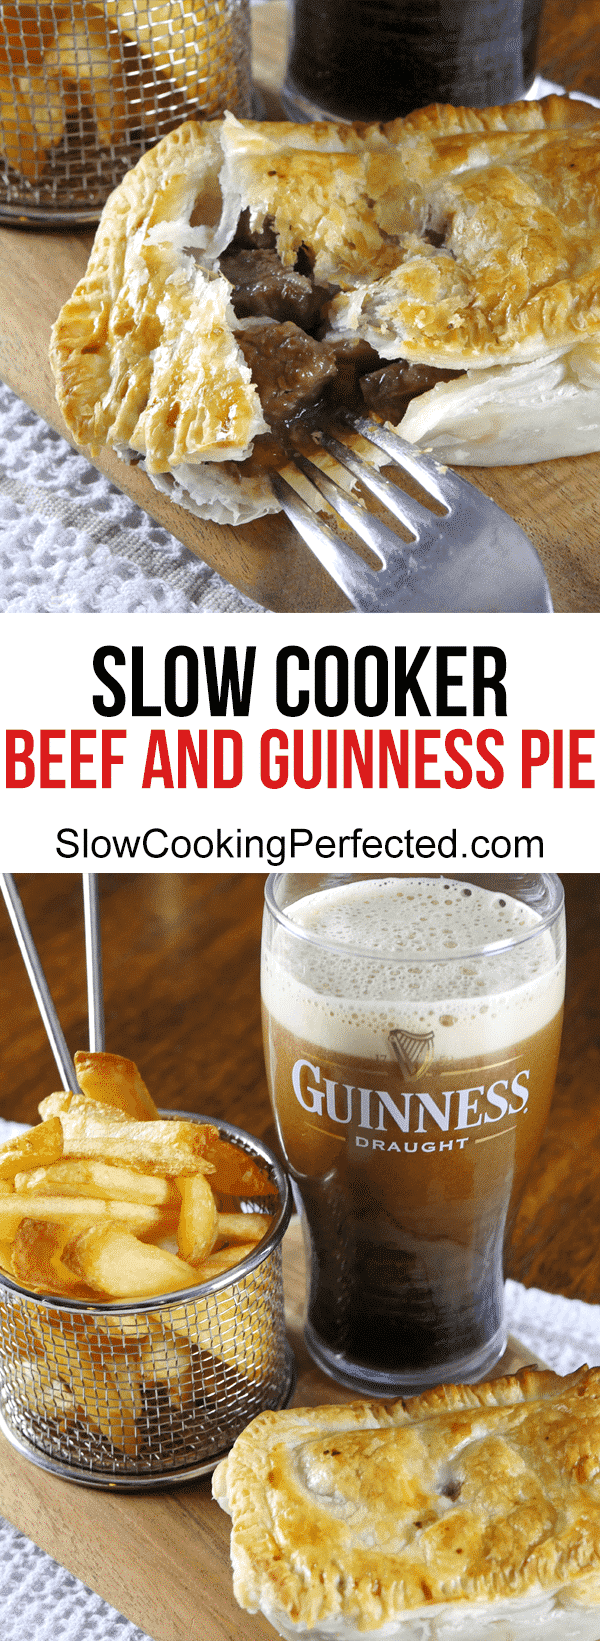 Slow Cooker Beef and Guinness Pie | Recipe | Beef and ...